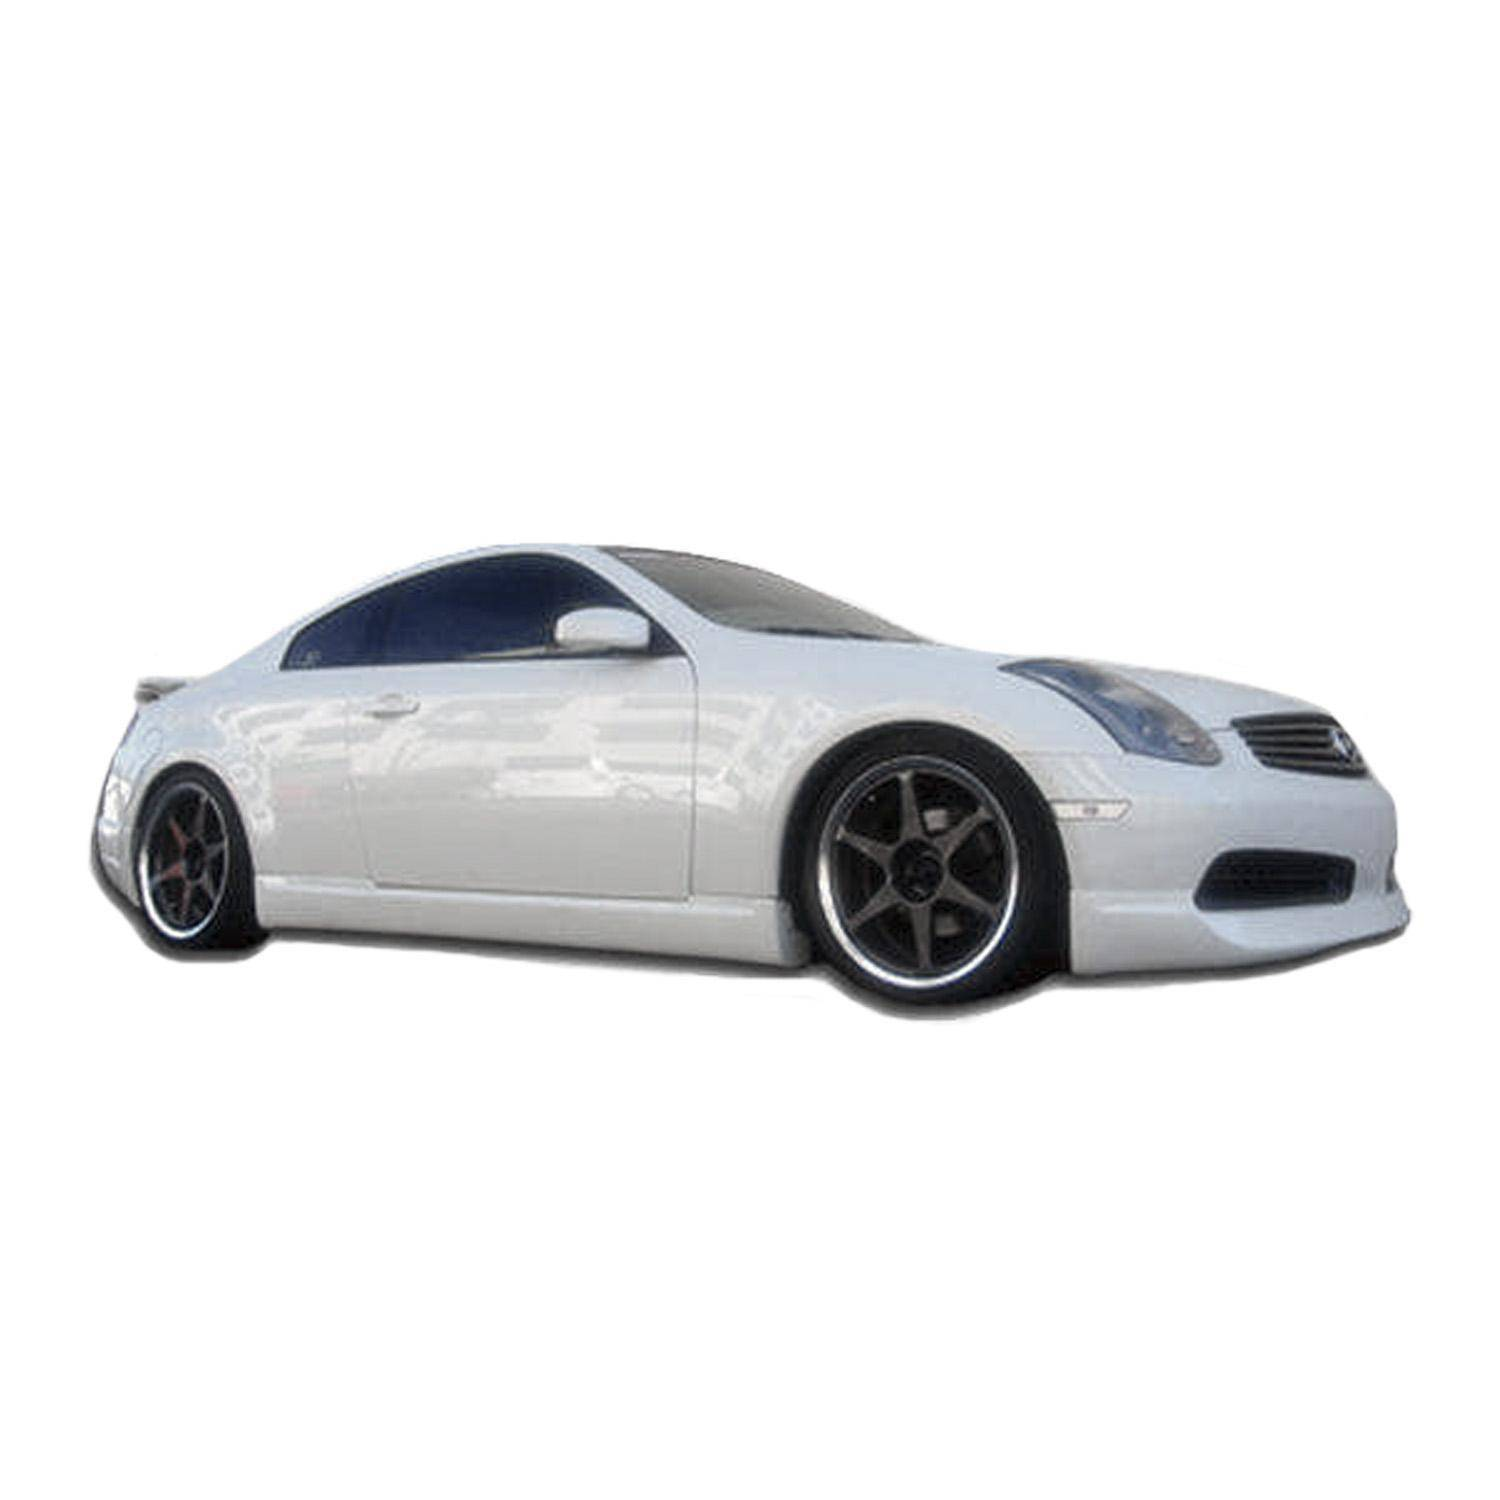 Infiniti G35 2DR Coupe 2003-2007 ING Style 2 Piece Polyurethane Side Skirts - Pair